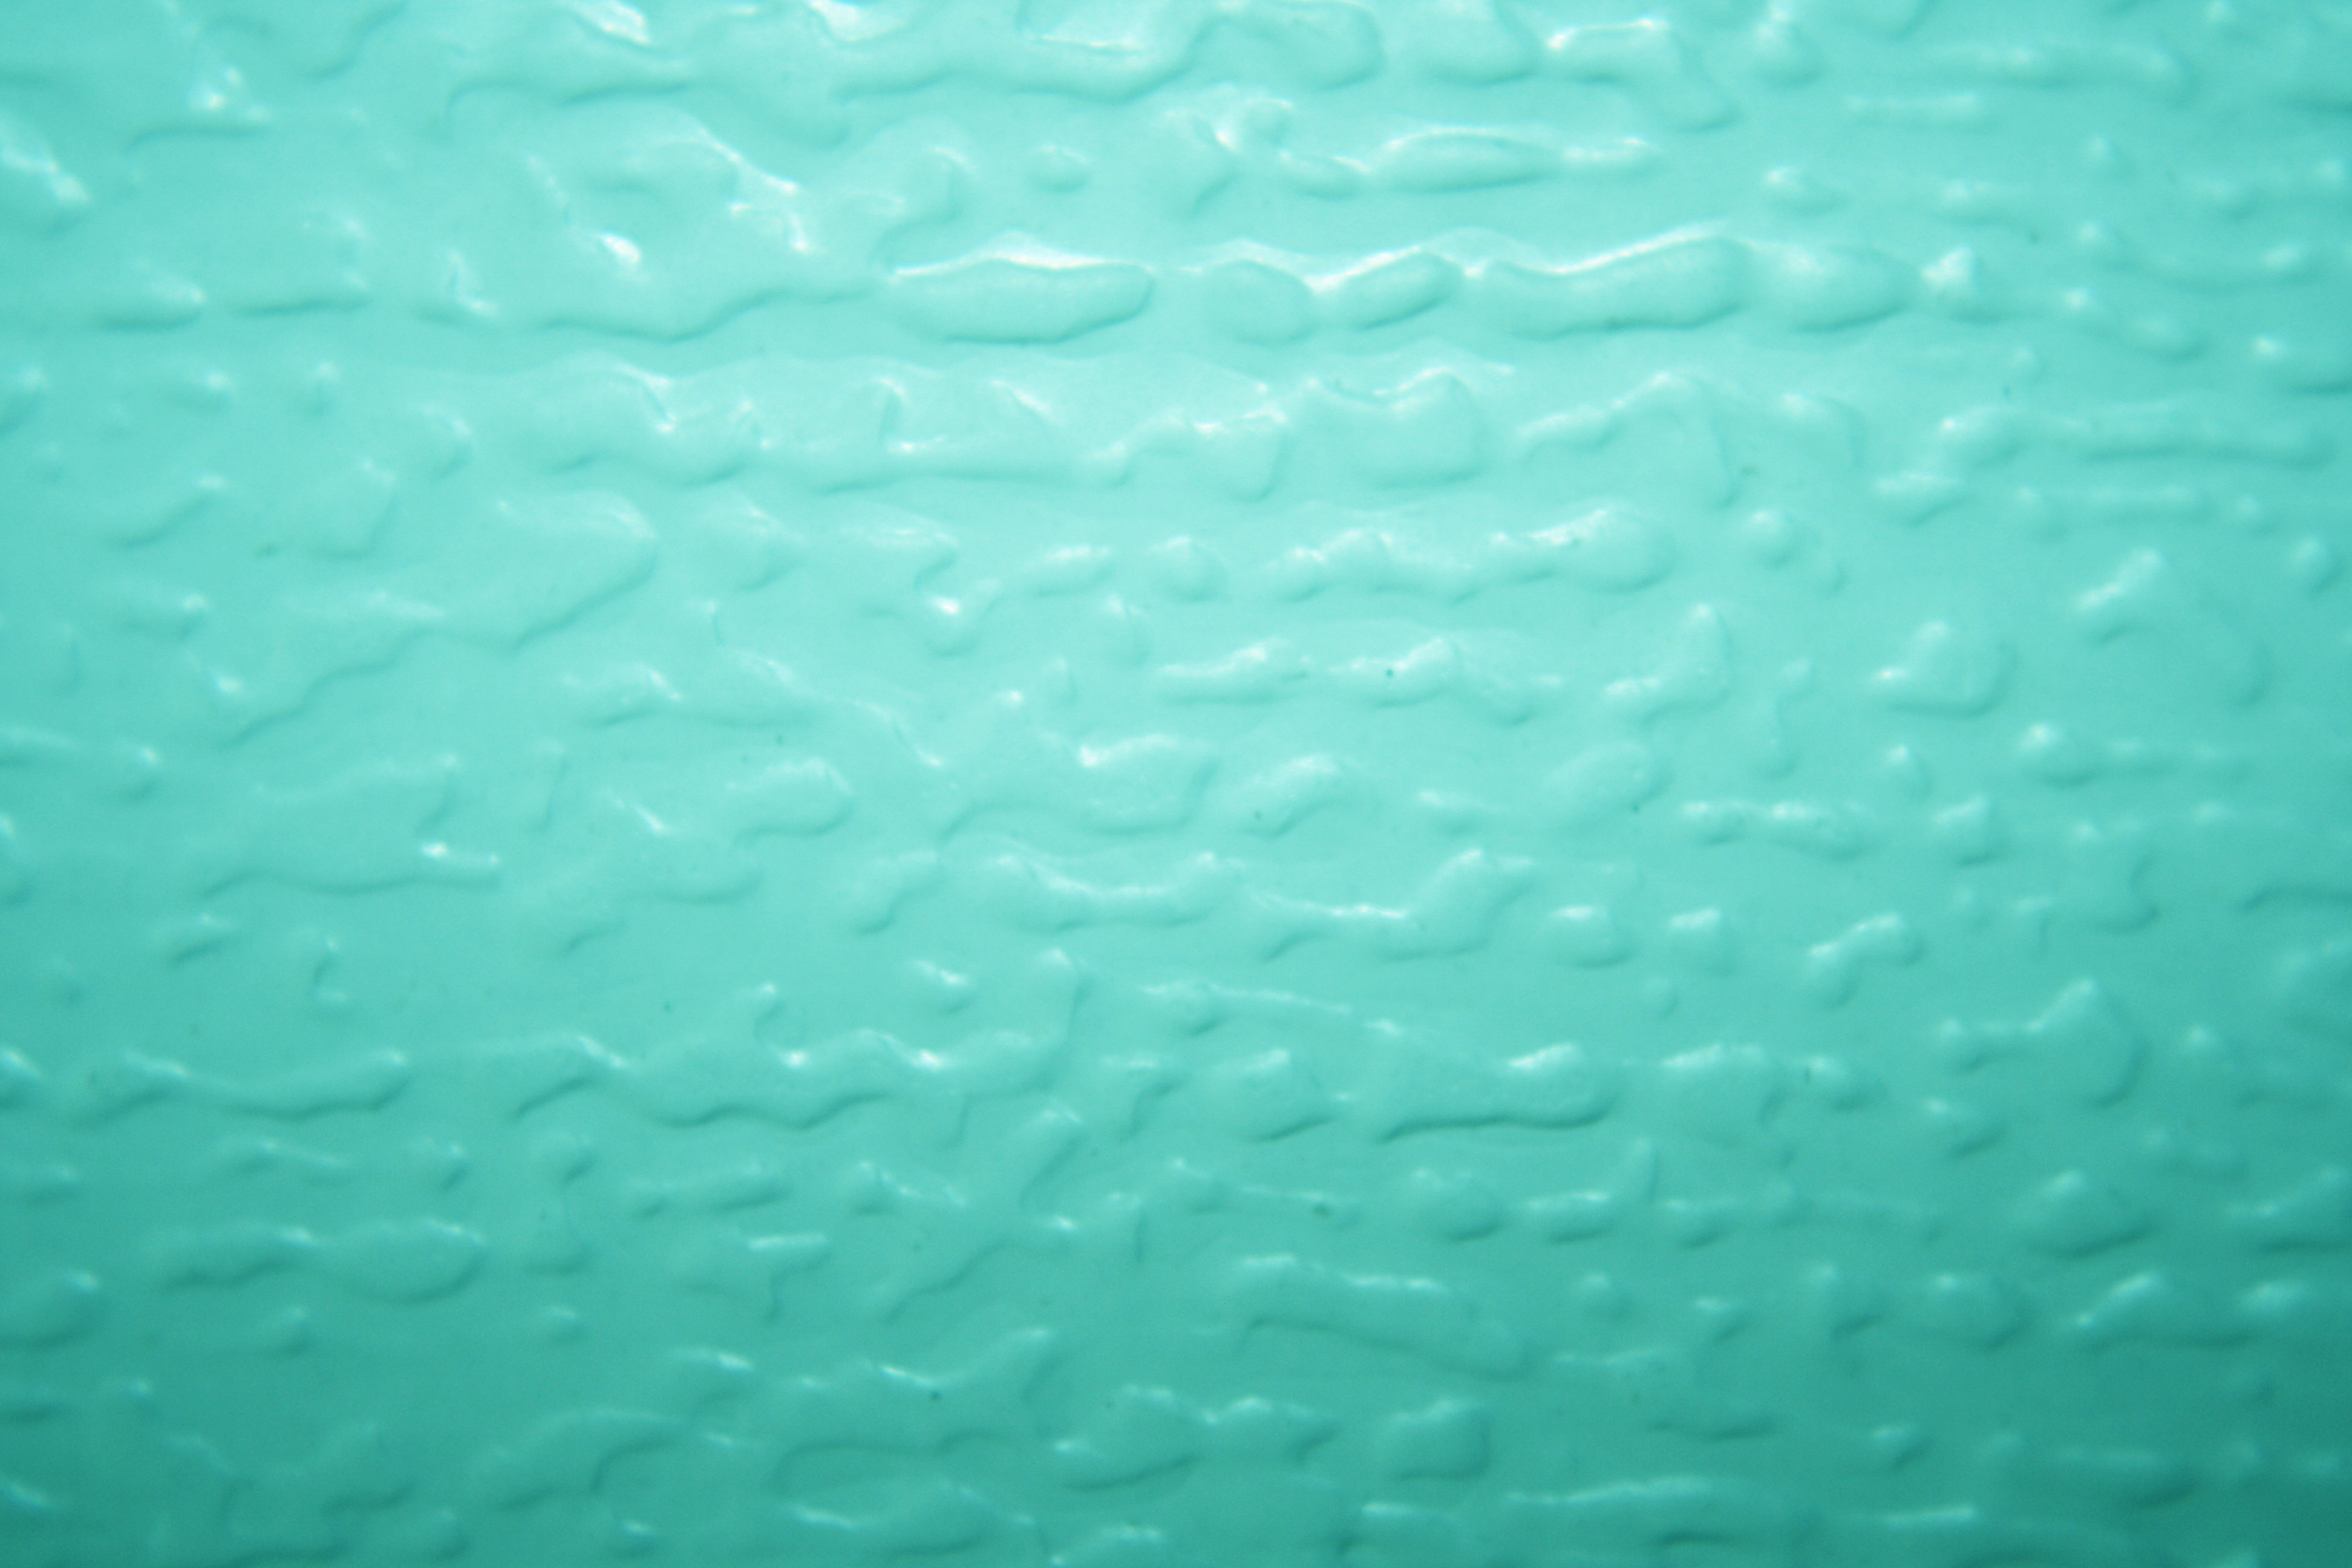 The Texture Of Teal And Turquoise: 1000+ Images About Blue And Turquoise Texture On Pinterest